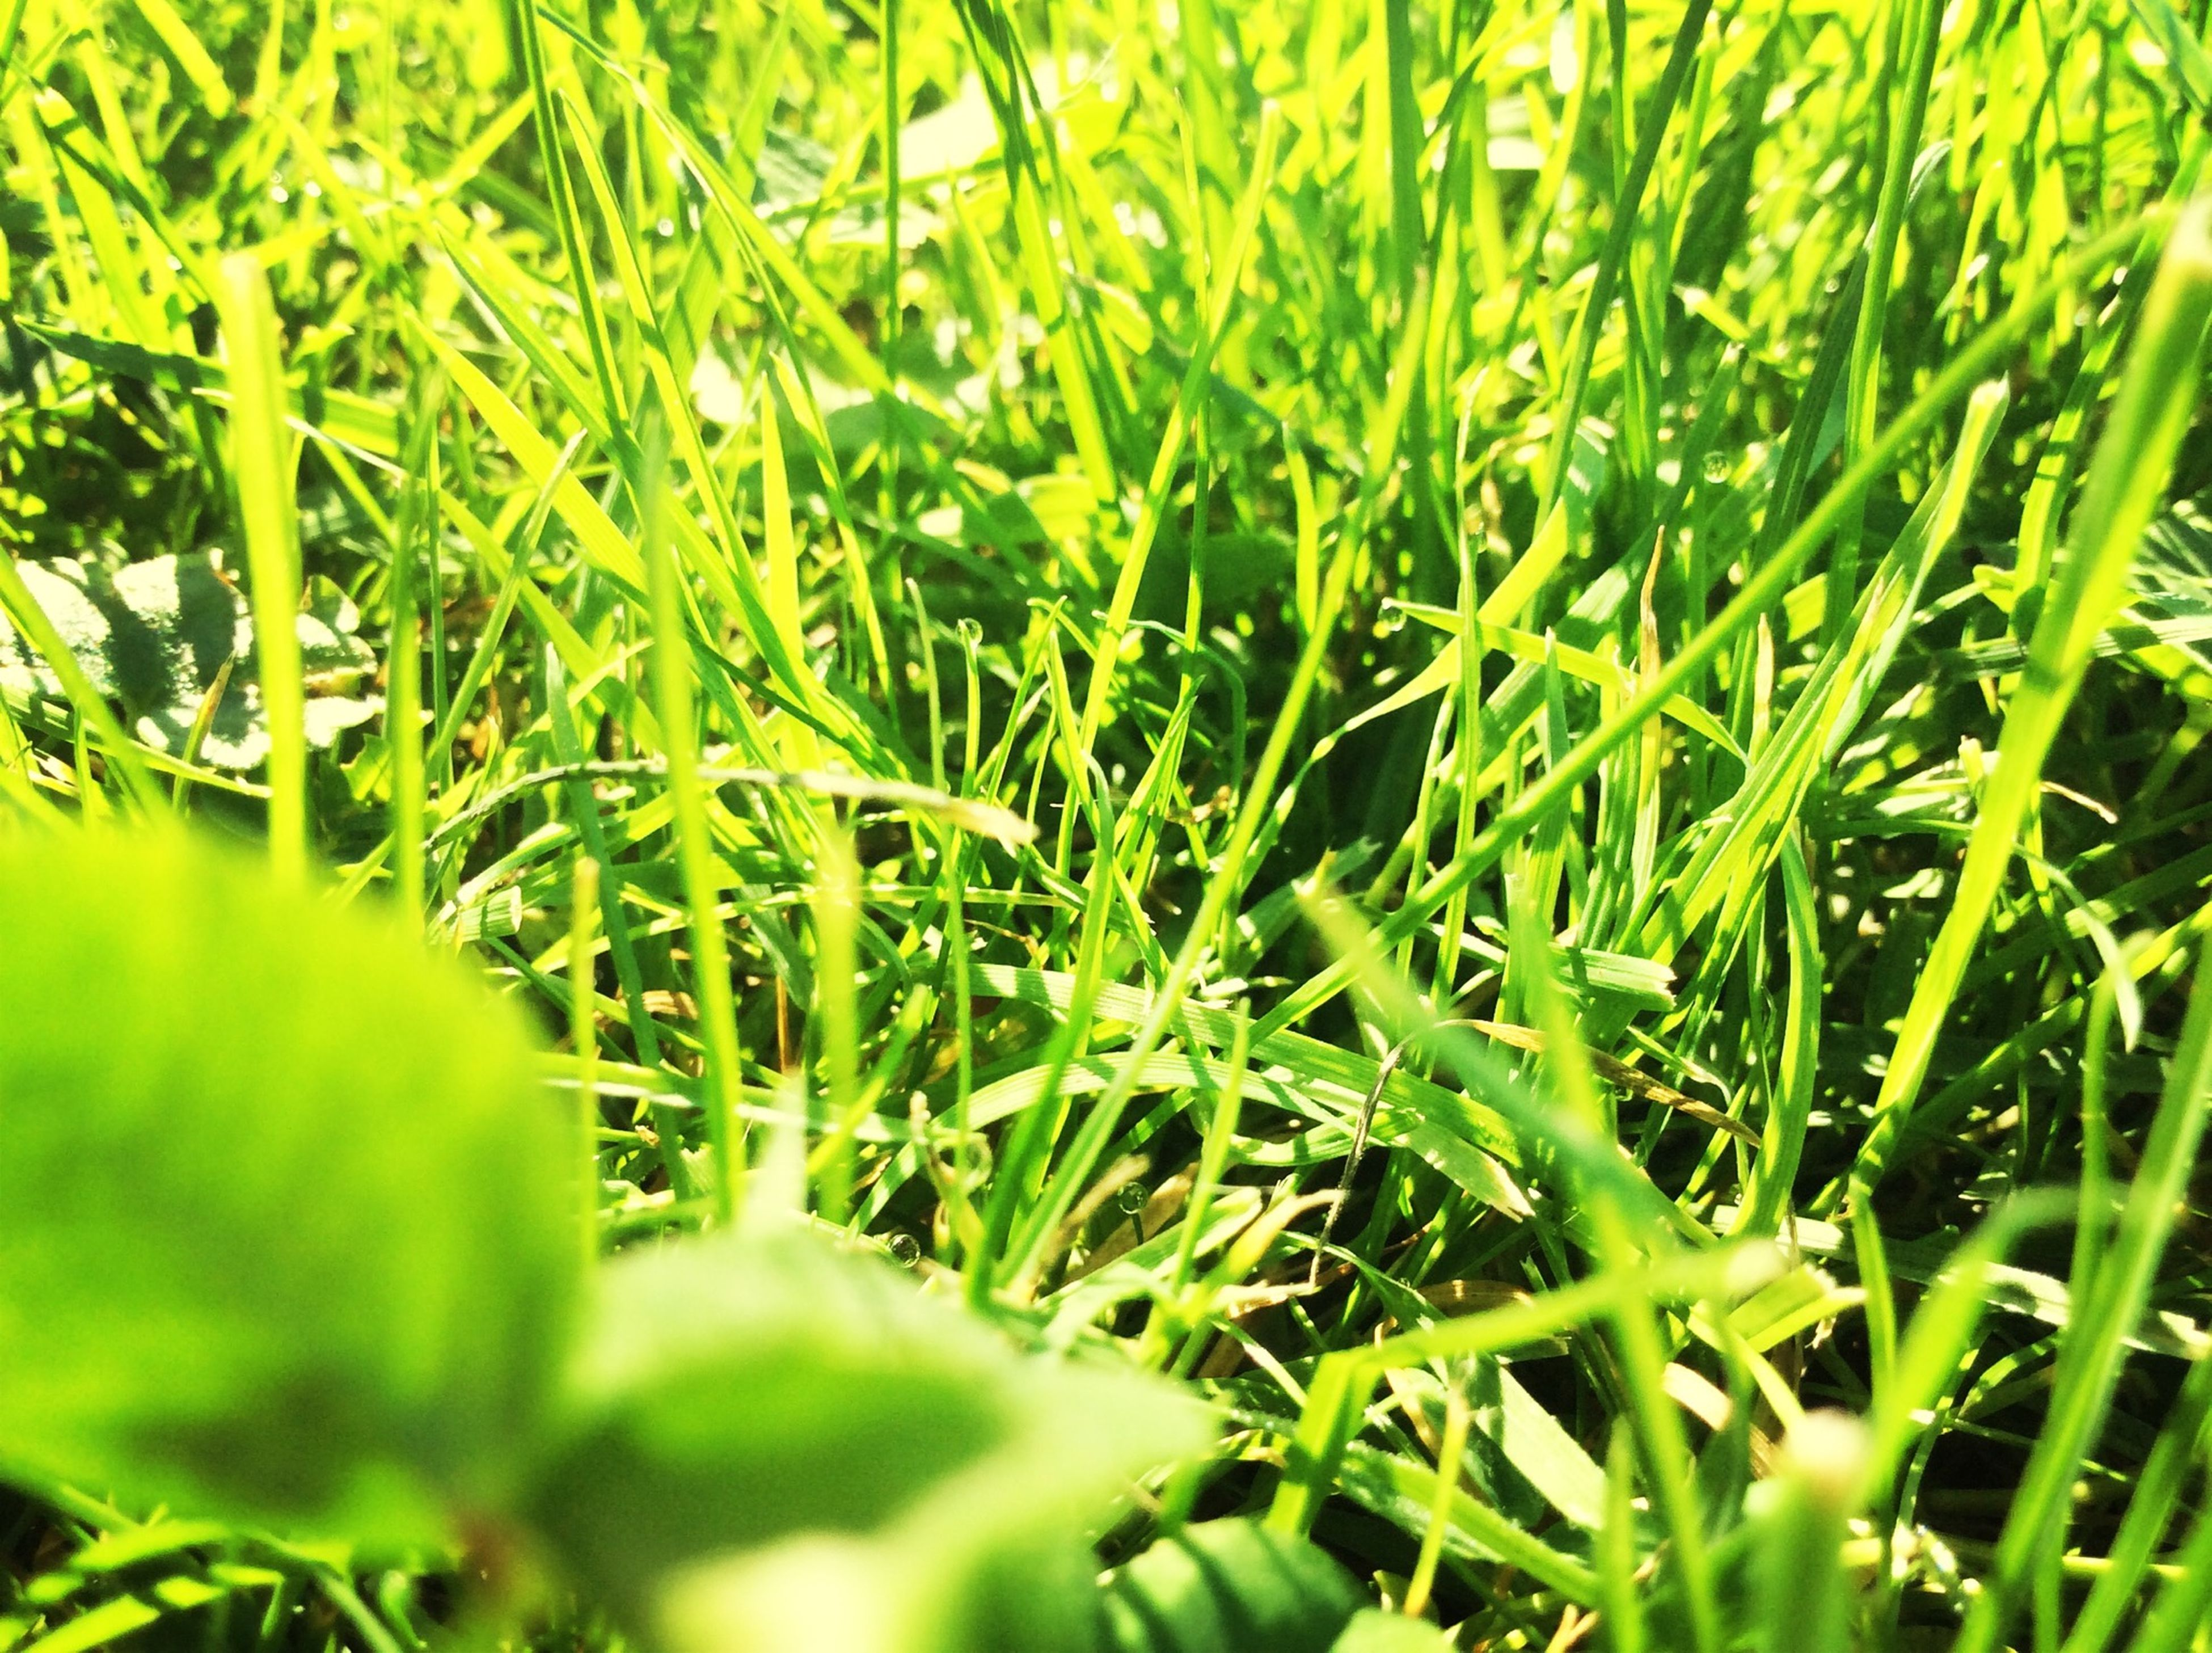 green color, growth, grass, nature, field, plant, blade of grass, beauty in nature, lush foliage, full frame, tranquility, green, selective focus, close-up, backgrounds, leaf, freshness, day, outdoors, no people